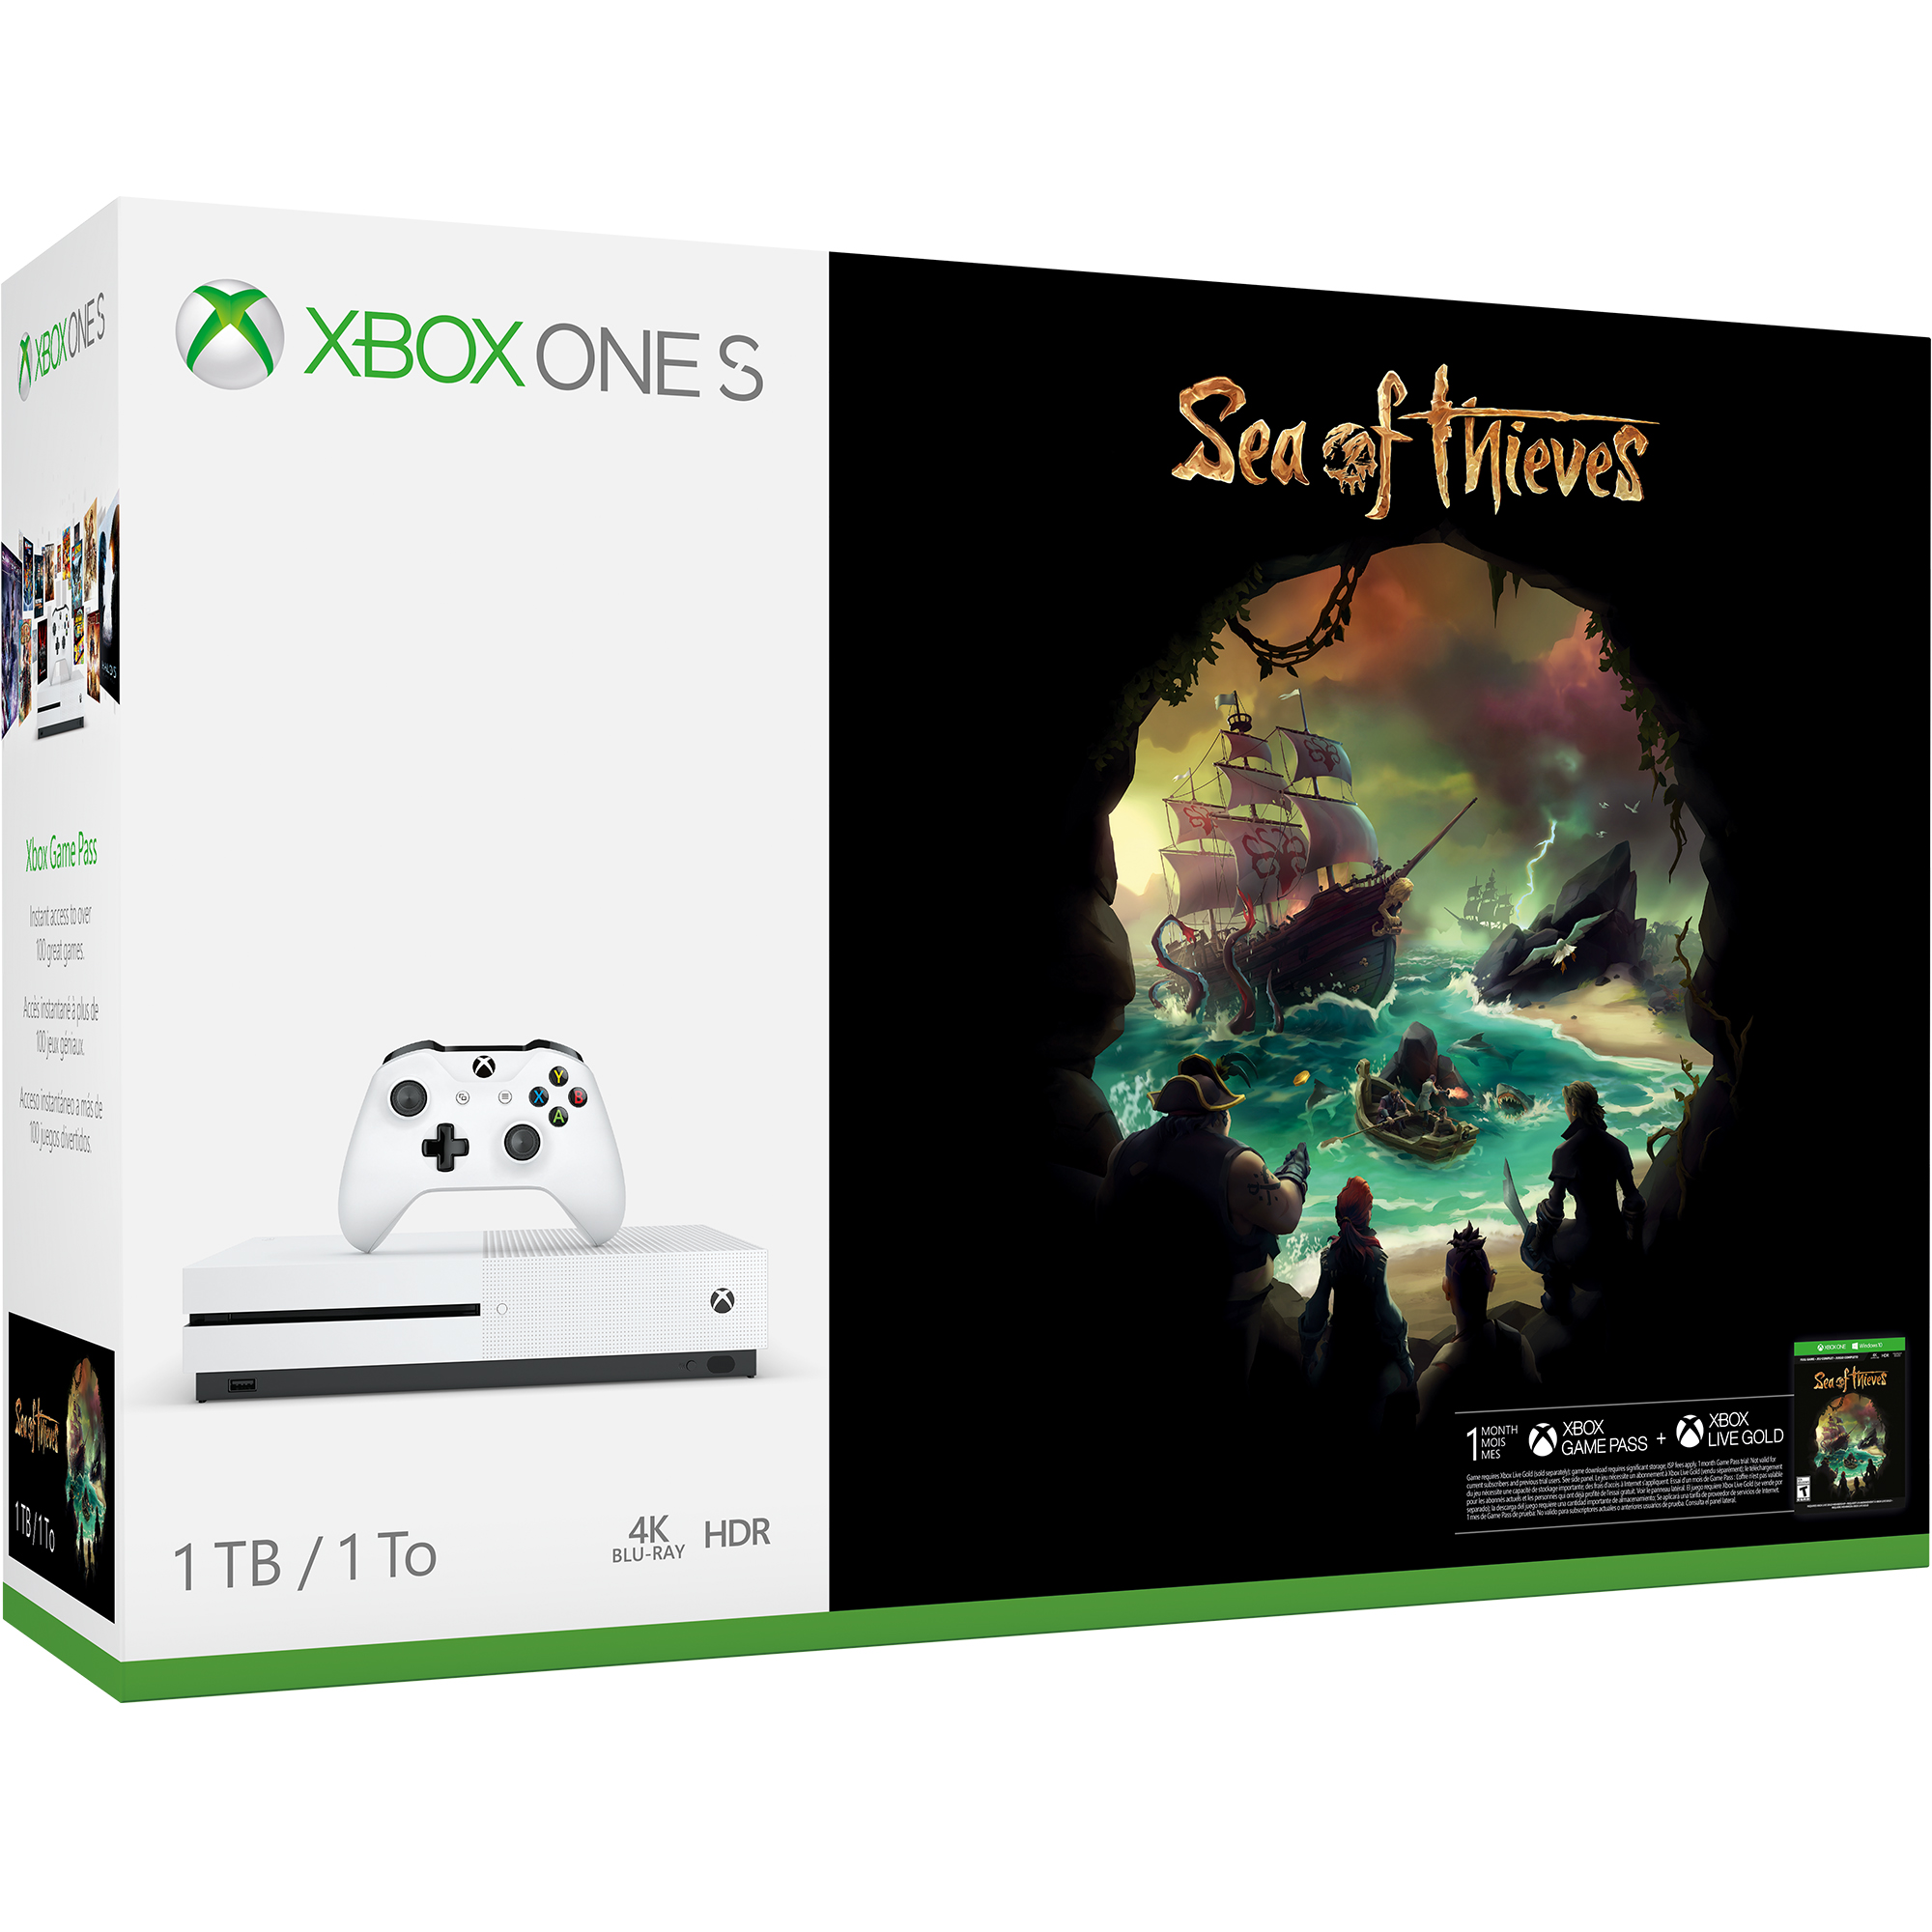 Microsoft Xbox One S 1TB Sea of Thieves Bundle, White, 234-00324